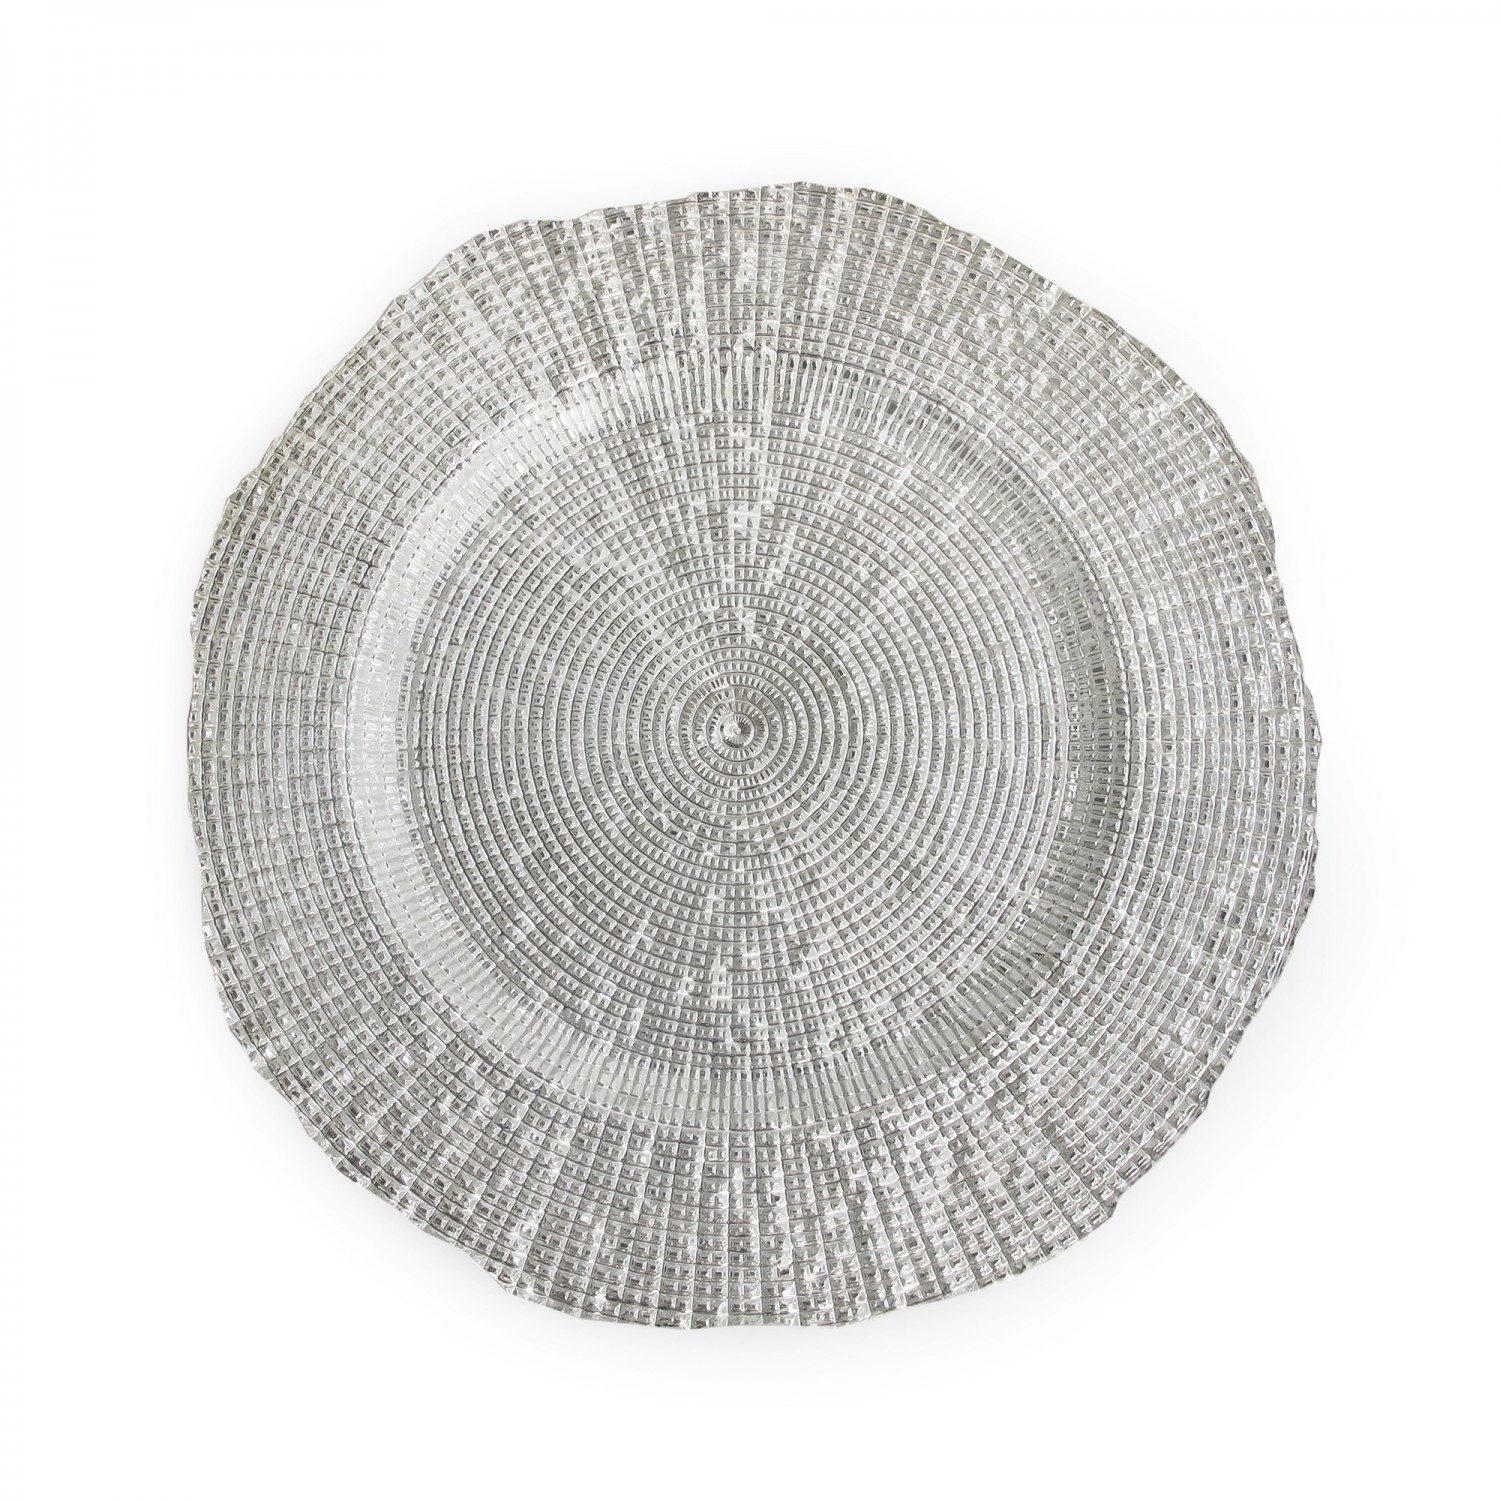 The Jay Companies 1470337 Round Infinity Silver Glass Charger Plate 13""